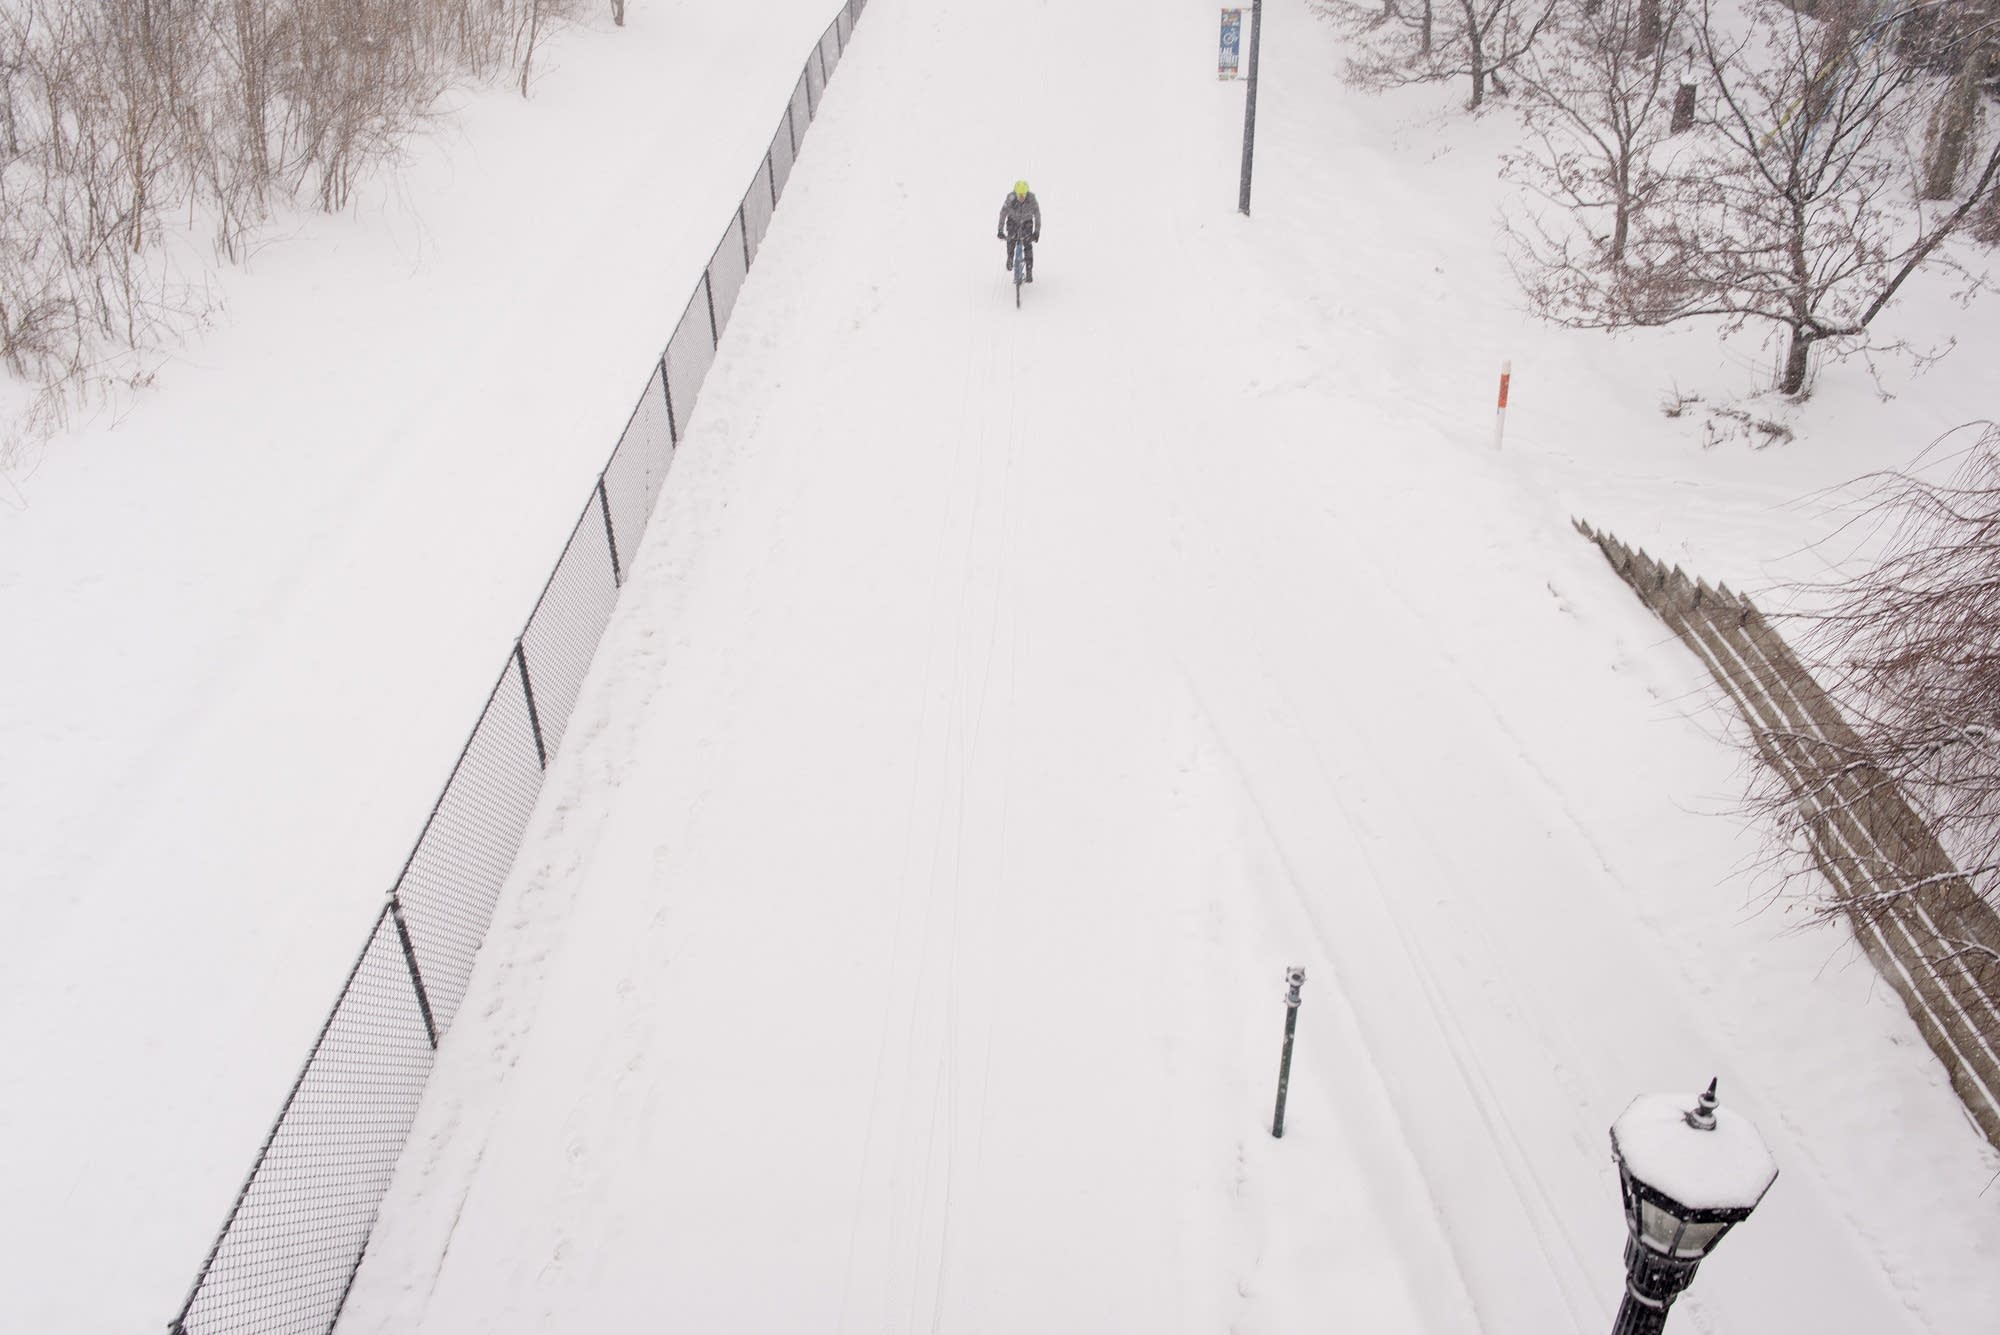 A cyclist braves snowy conditions riding on the Midtown Greenway.